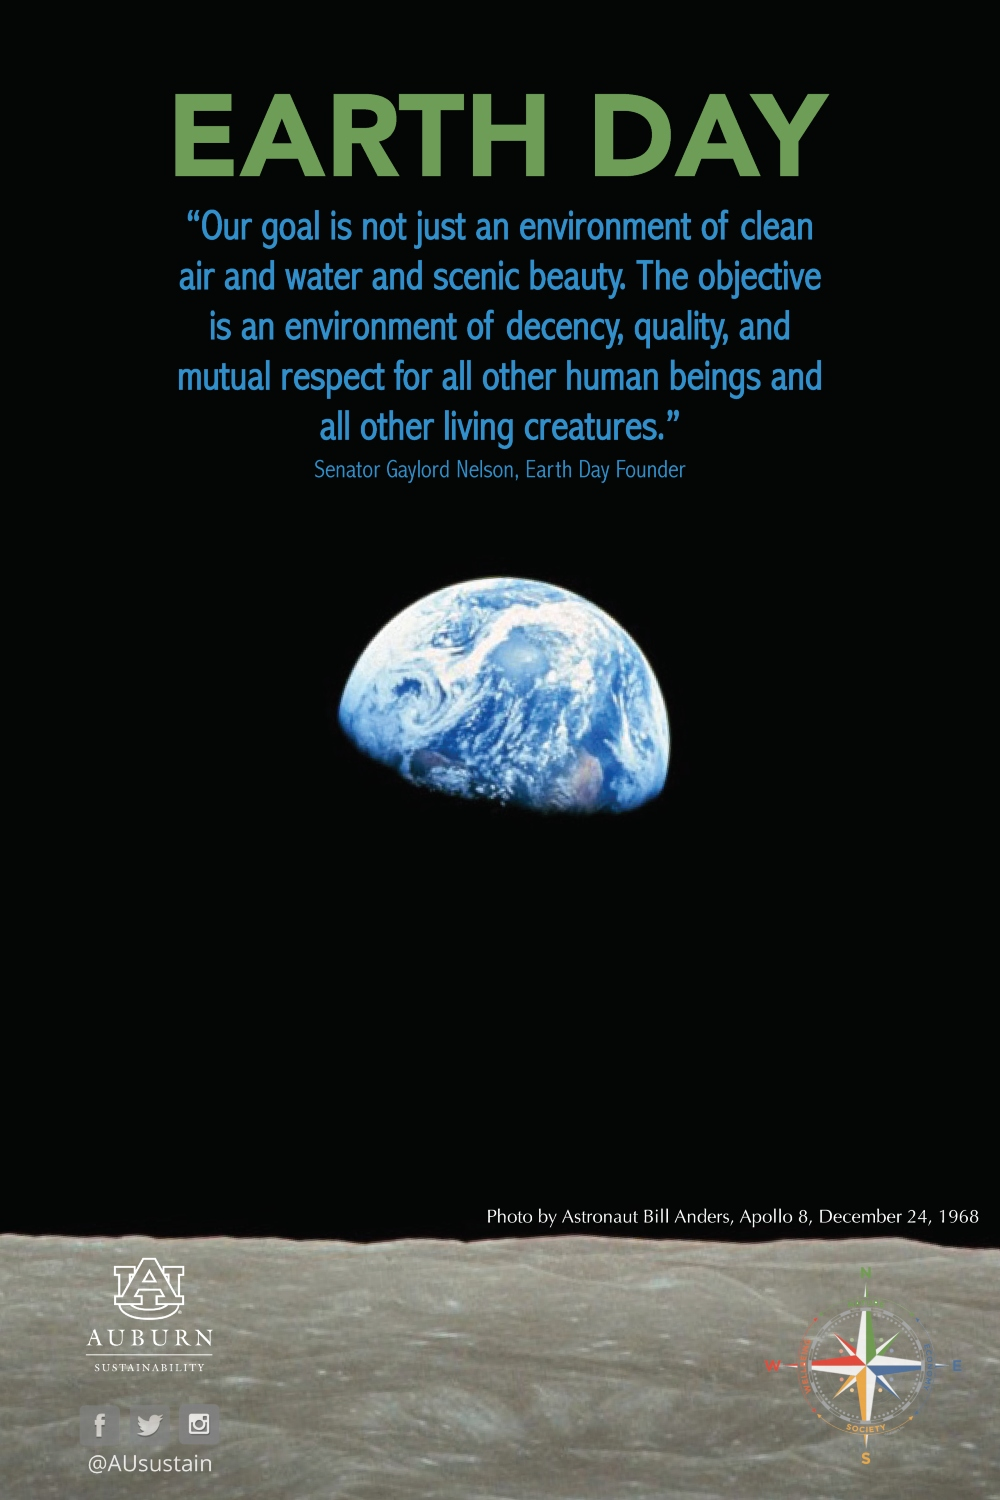 "Image of the Earth rise with the Gaylord Nelson quote: ""Our goal is not just an environment of clean air and water and scenic beauty. The objective is an environment of decency, quality, and mutual respect for all other human beings and all other living creatures."""